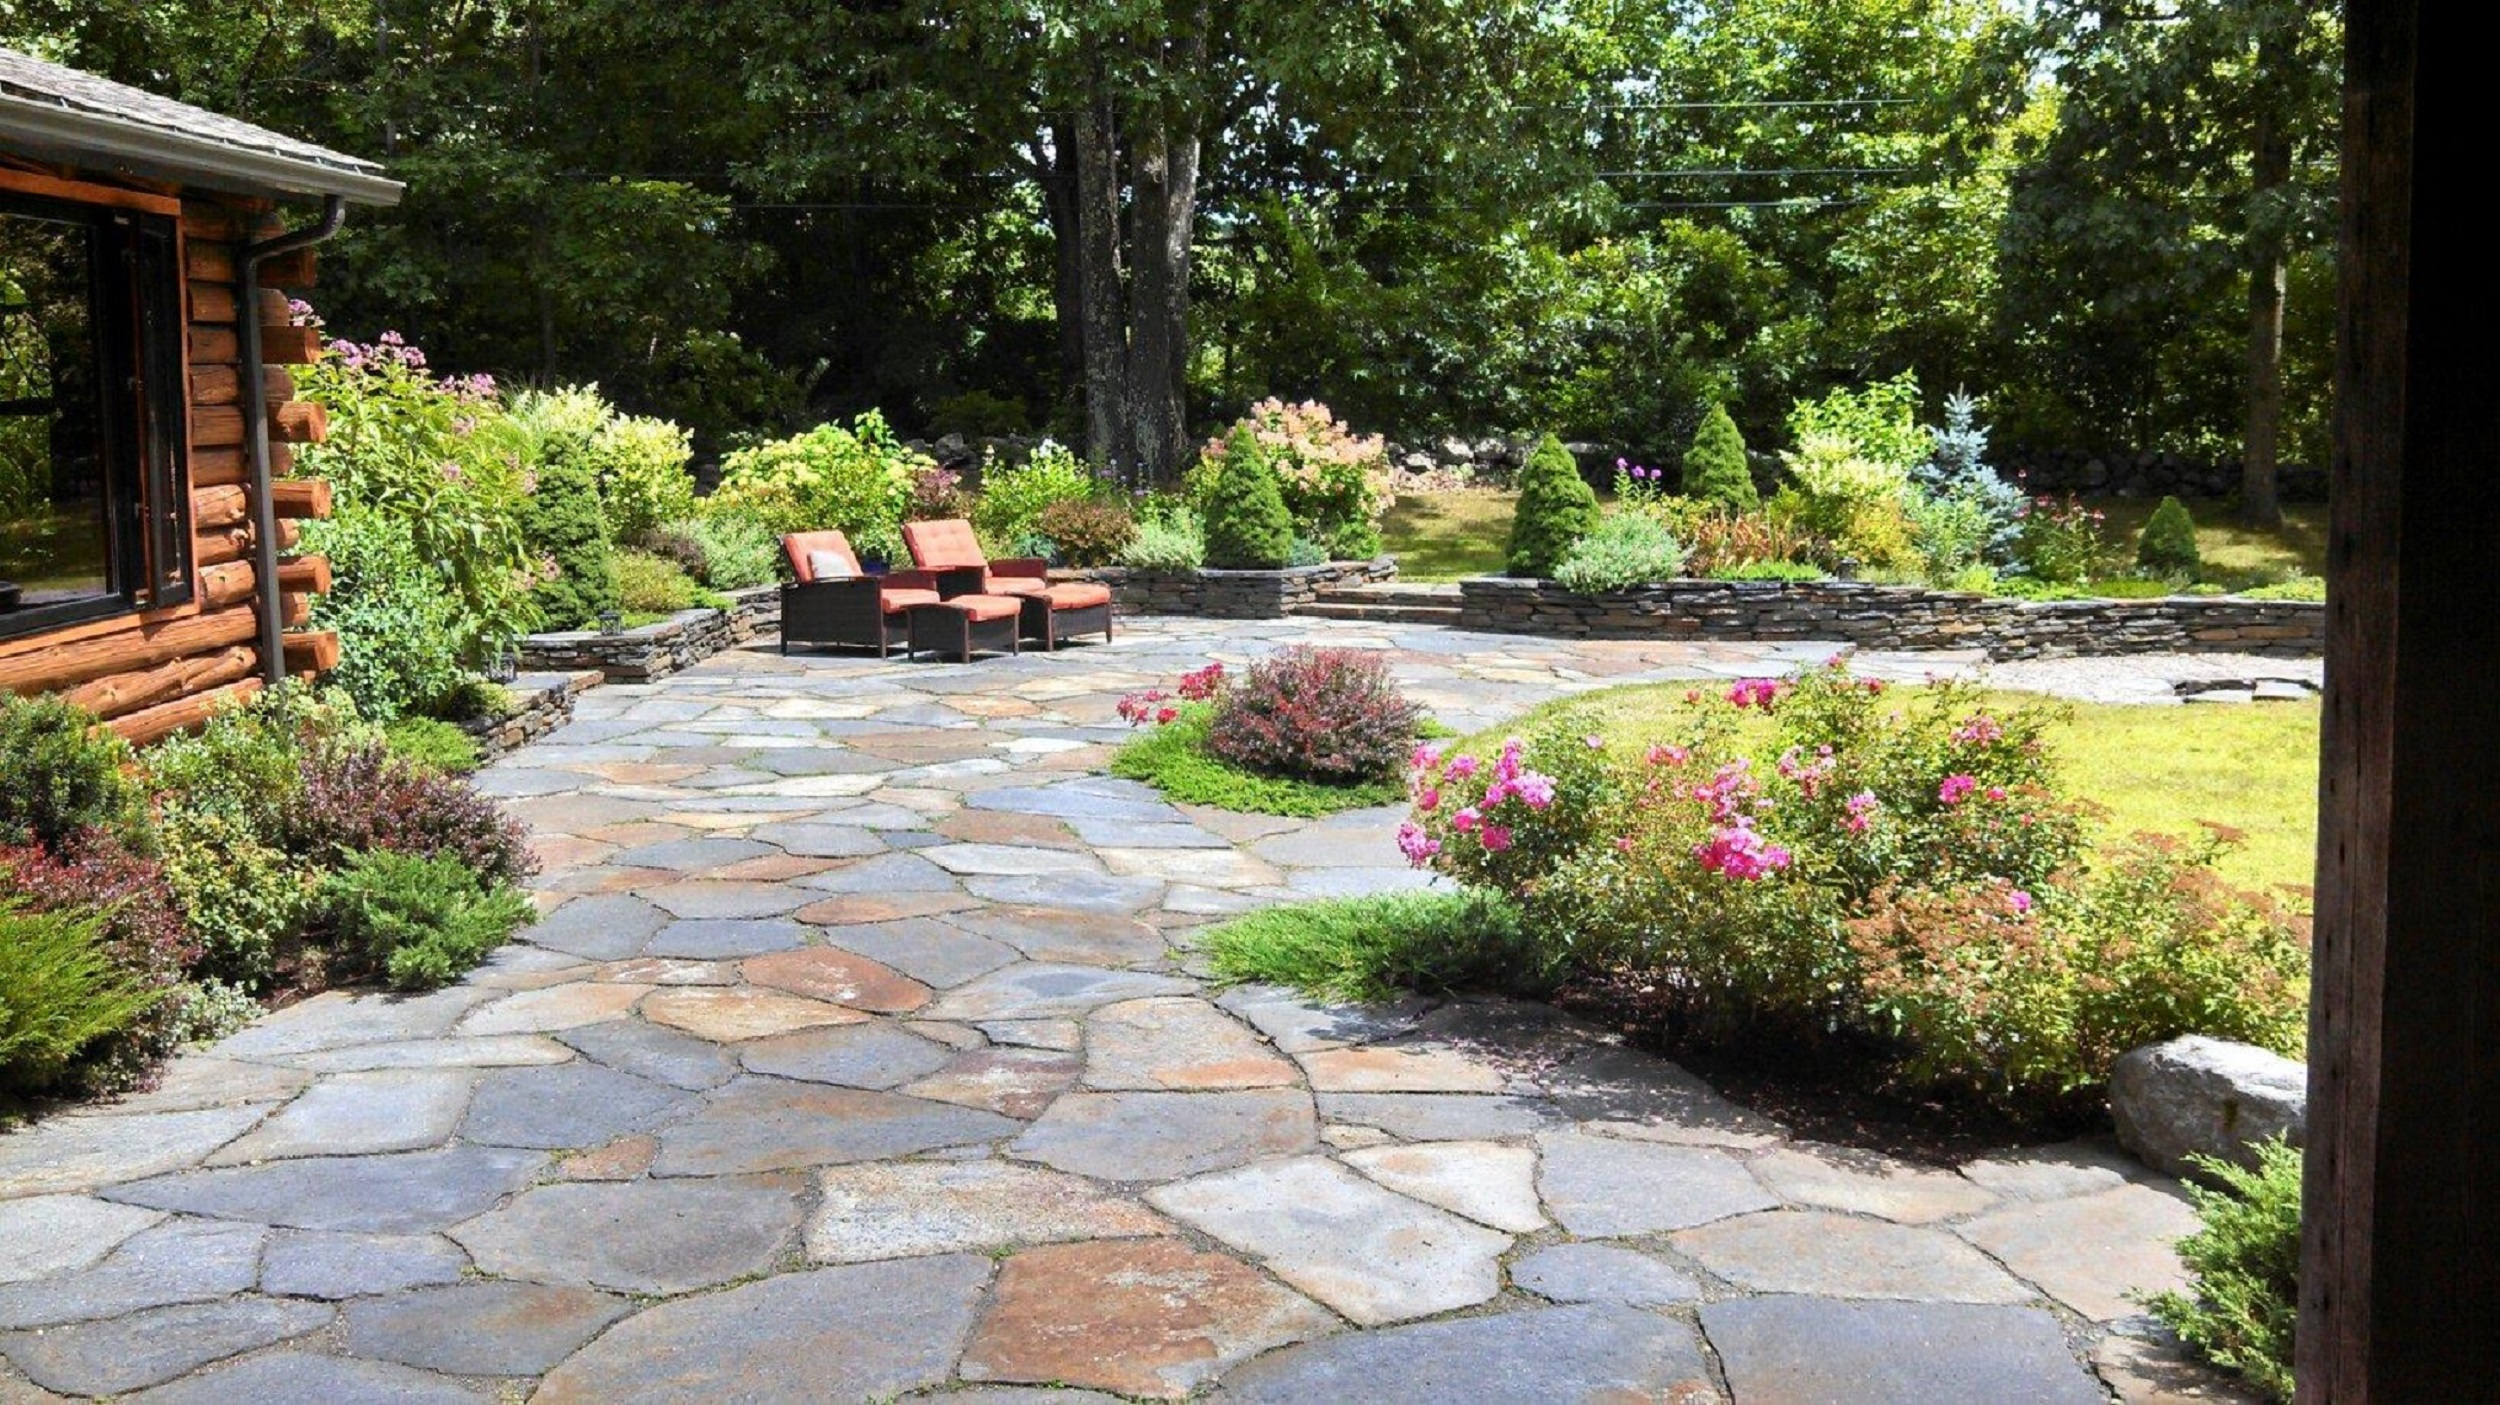 Design Your Own Garden garden puzzle Patios